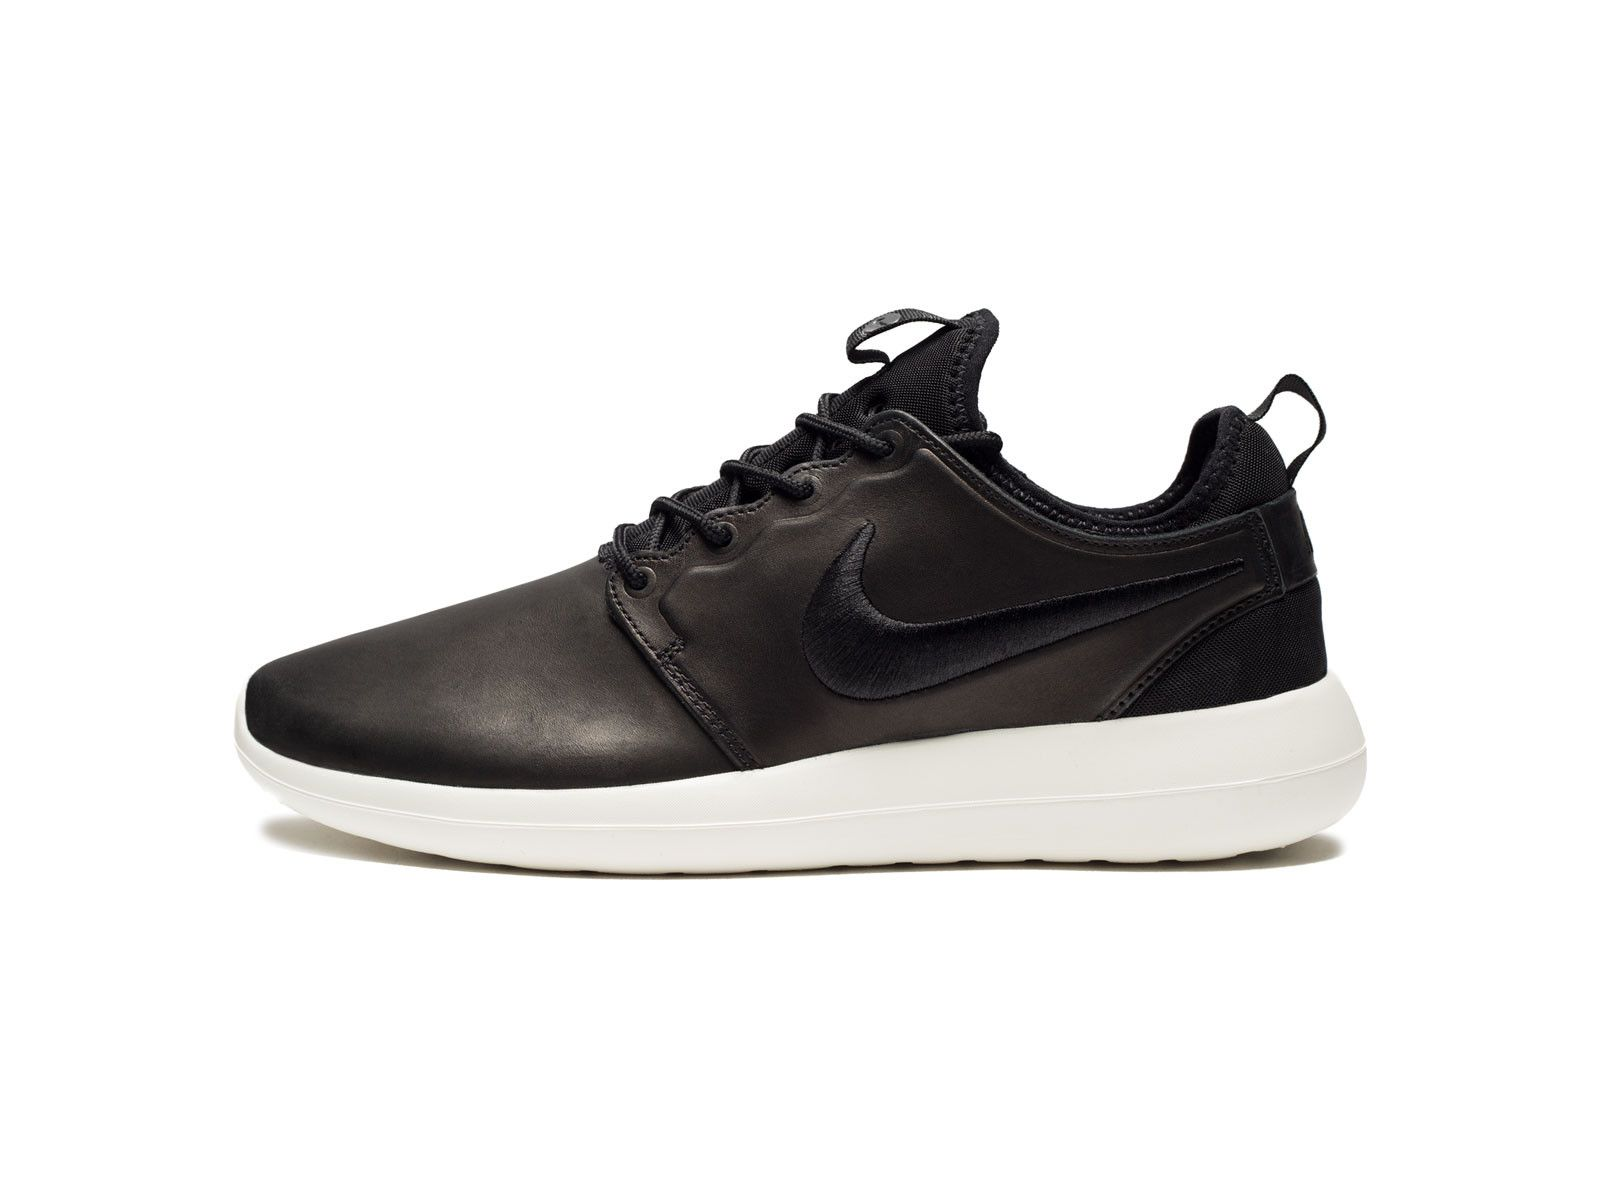 Calendario Pronunciar pintor  The Nike Roshe Two Releases In Gorgeous New Premium Leather Version